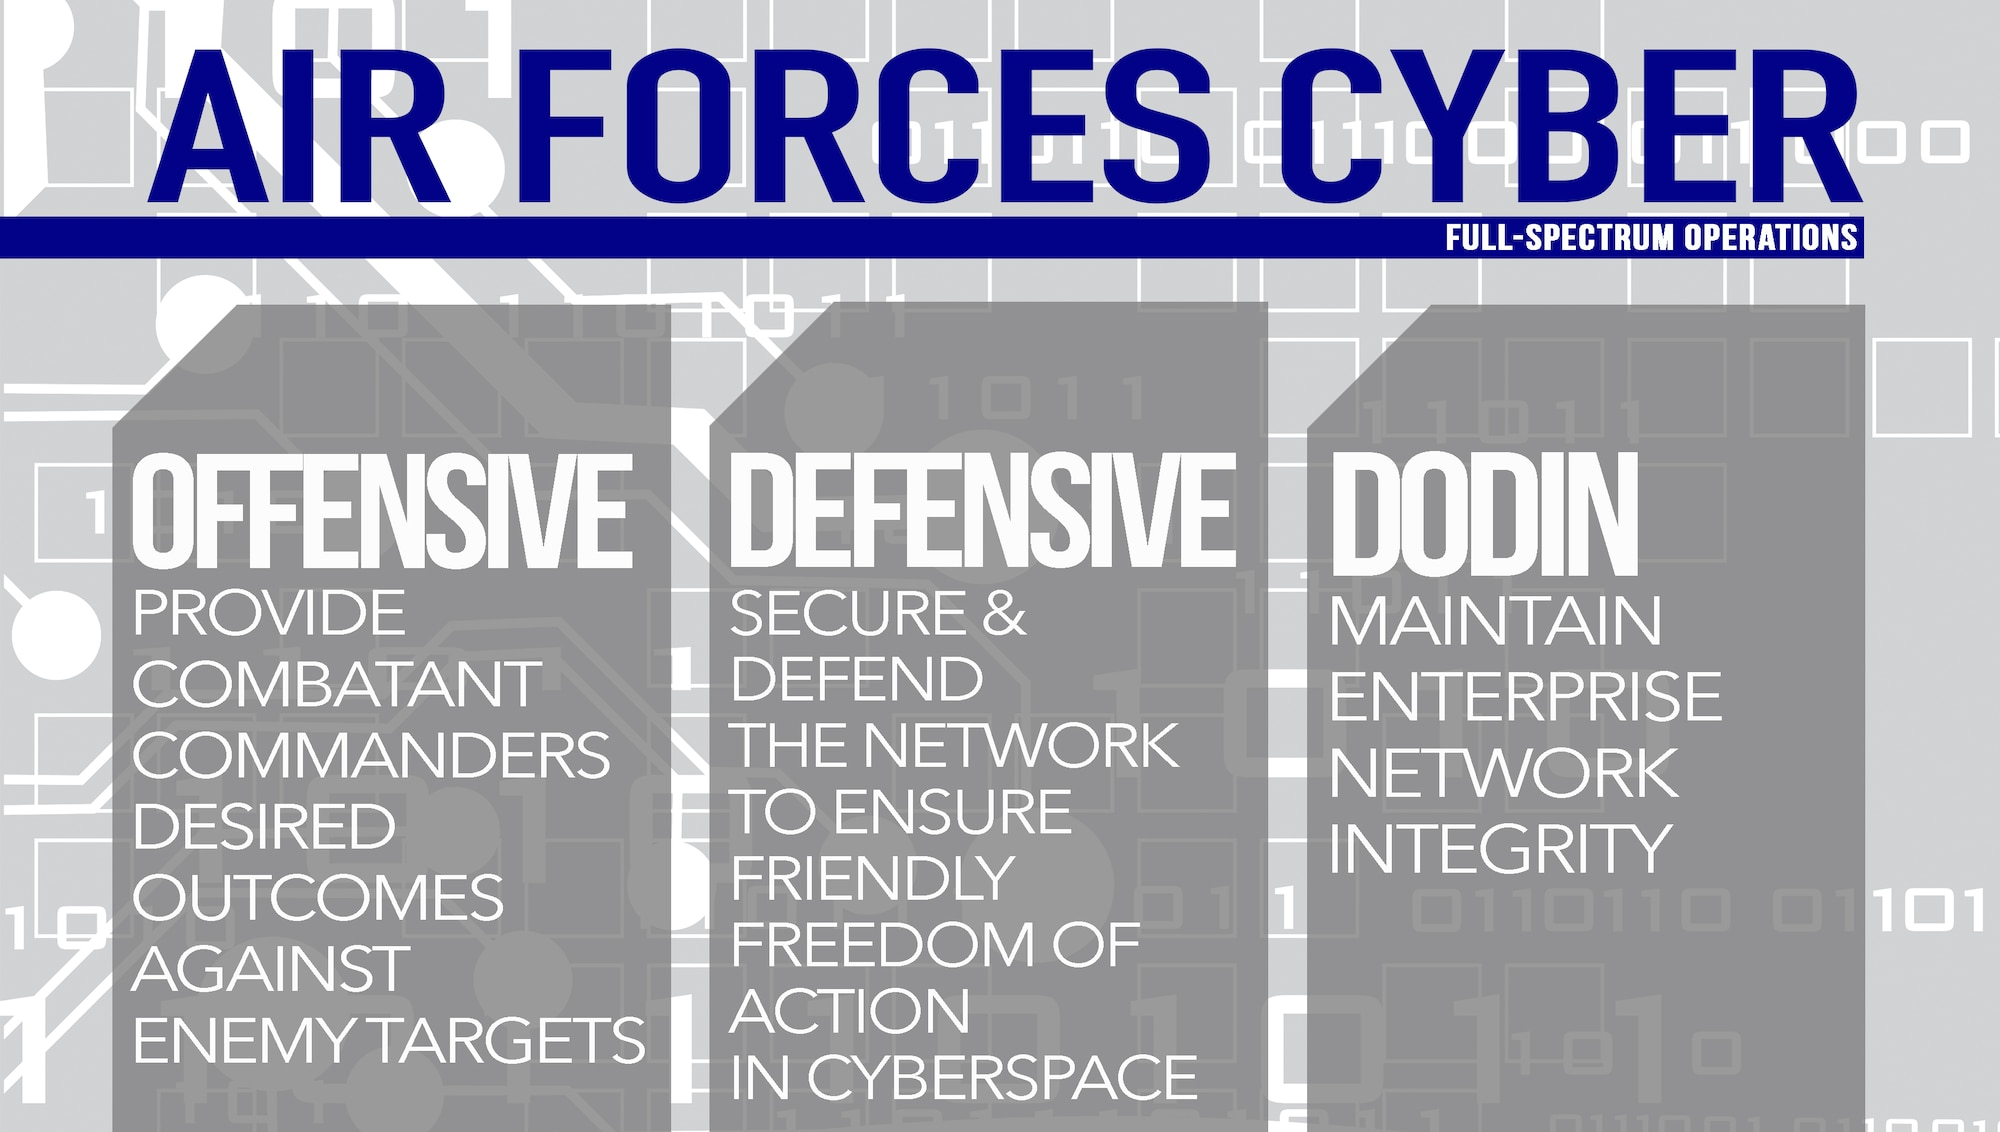 Air Forces Cyber's full-spectrum cyberspace operations include offensive, defensive and Department of Defense Information Network operations. OCO can provide combatant commander desired outcomes against adversary targets. DCO secure and defend the network to ensure friendly freedom-of action in cyberspace. DODIN operations maintain the integrity of the enterprise network. (U.S. Air Force graphic by Tech. Sgt. R.J. Biermann)